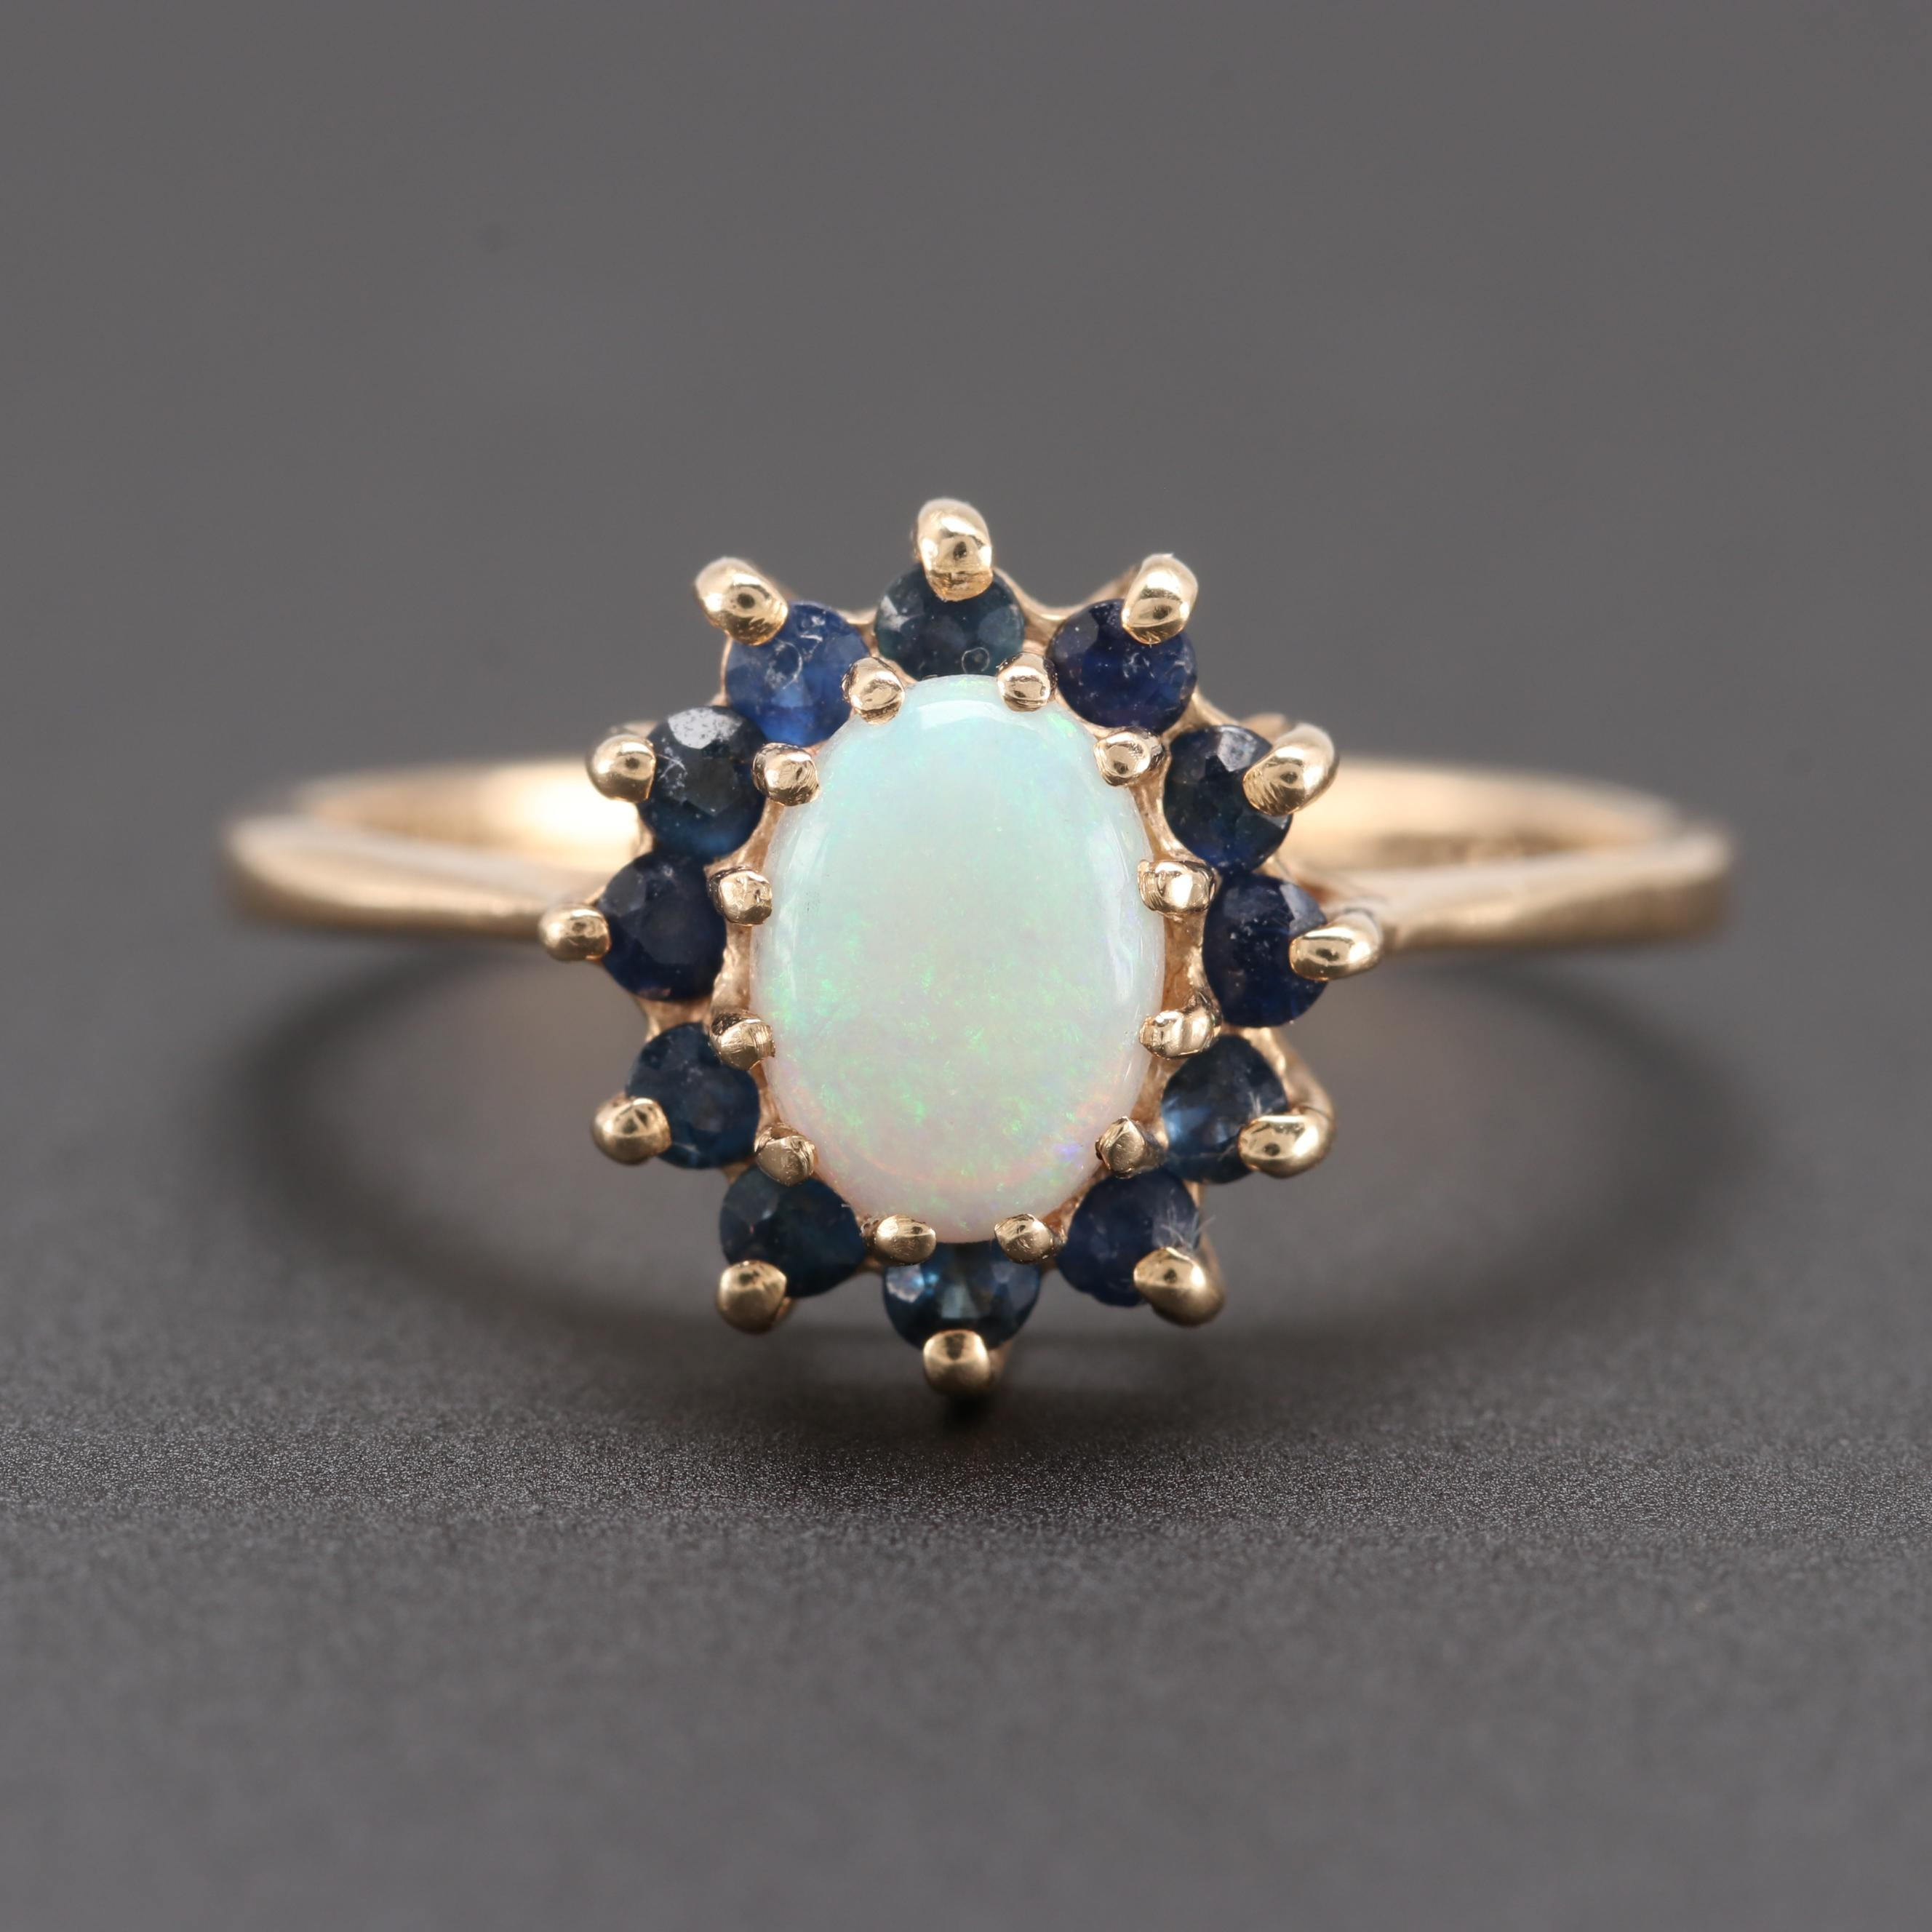 14K Yellow Gold Opal and Sapphire Ring